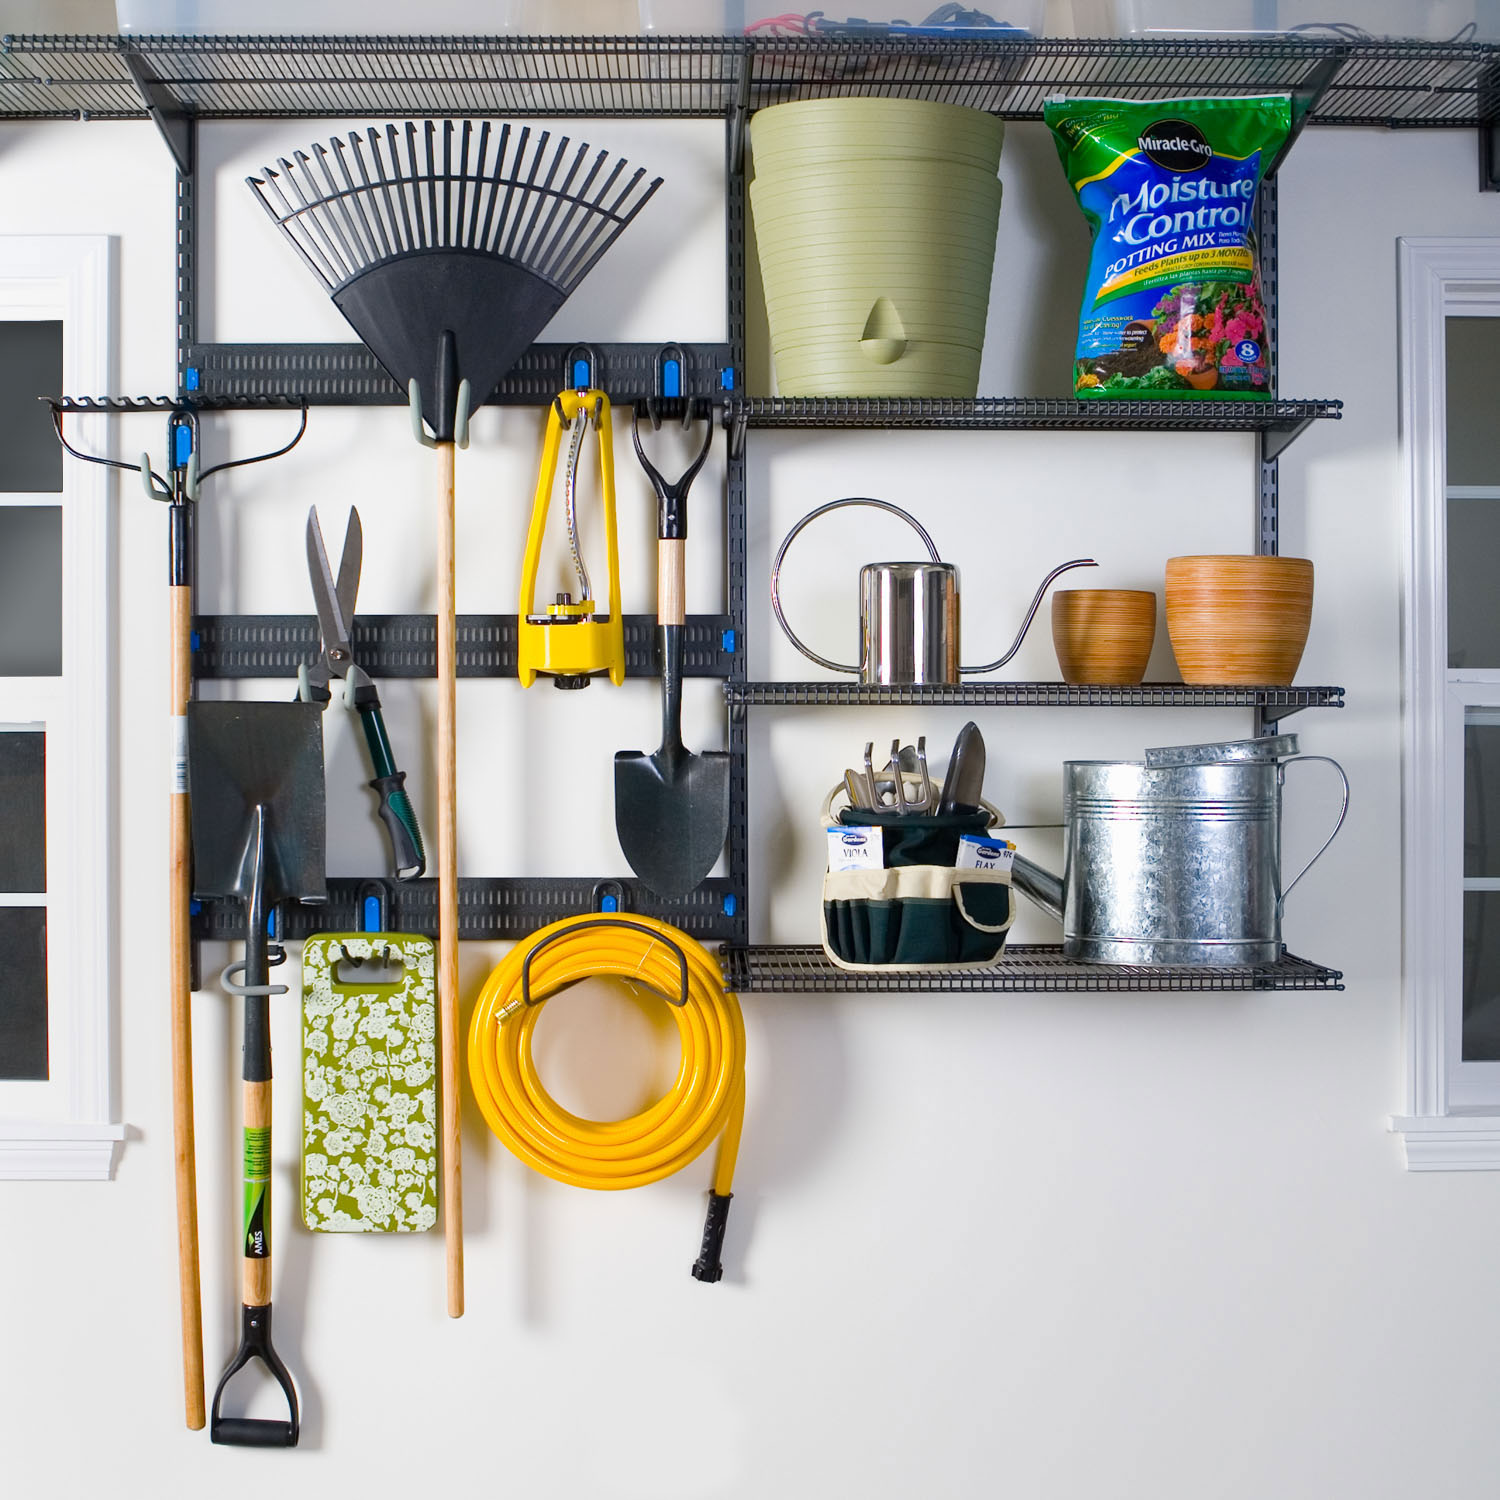 Spanners & Shelves